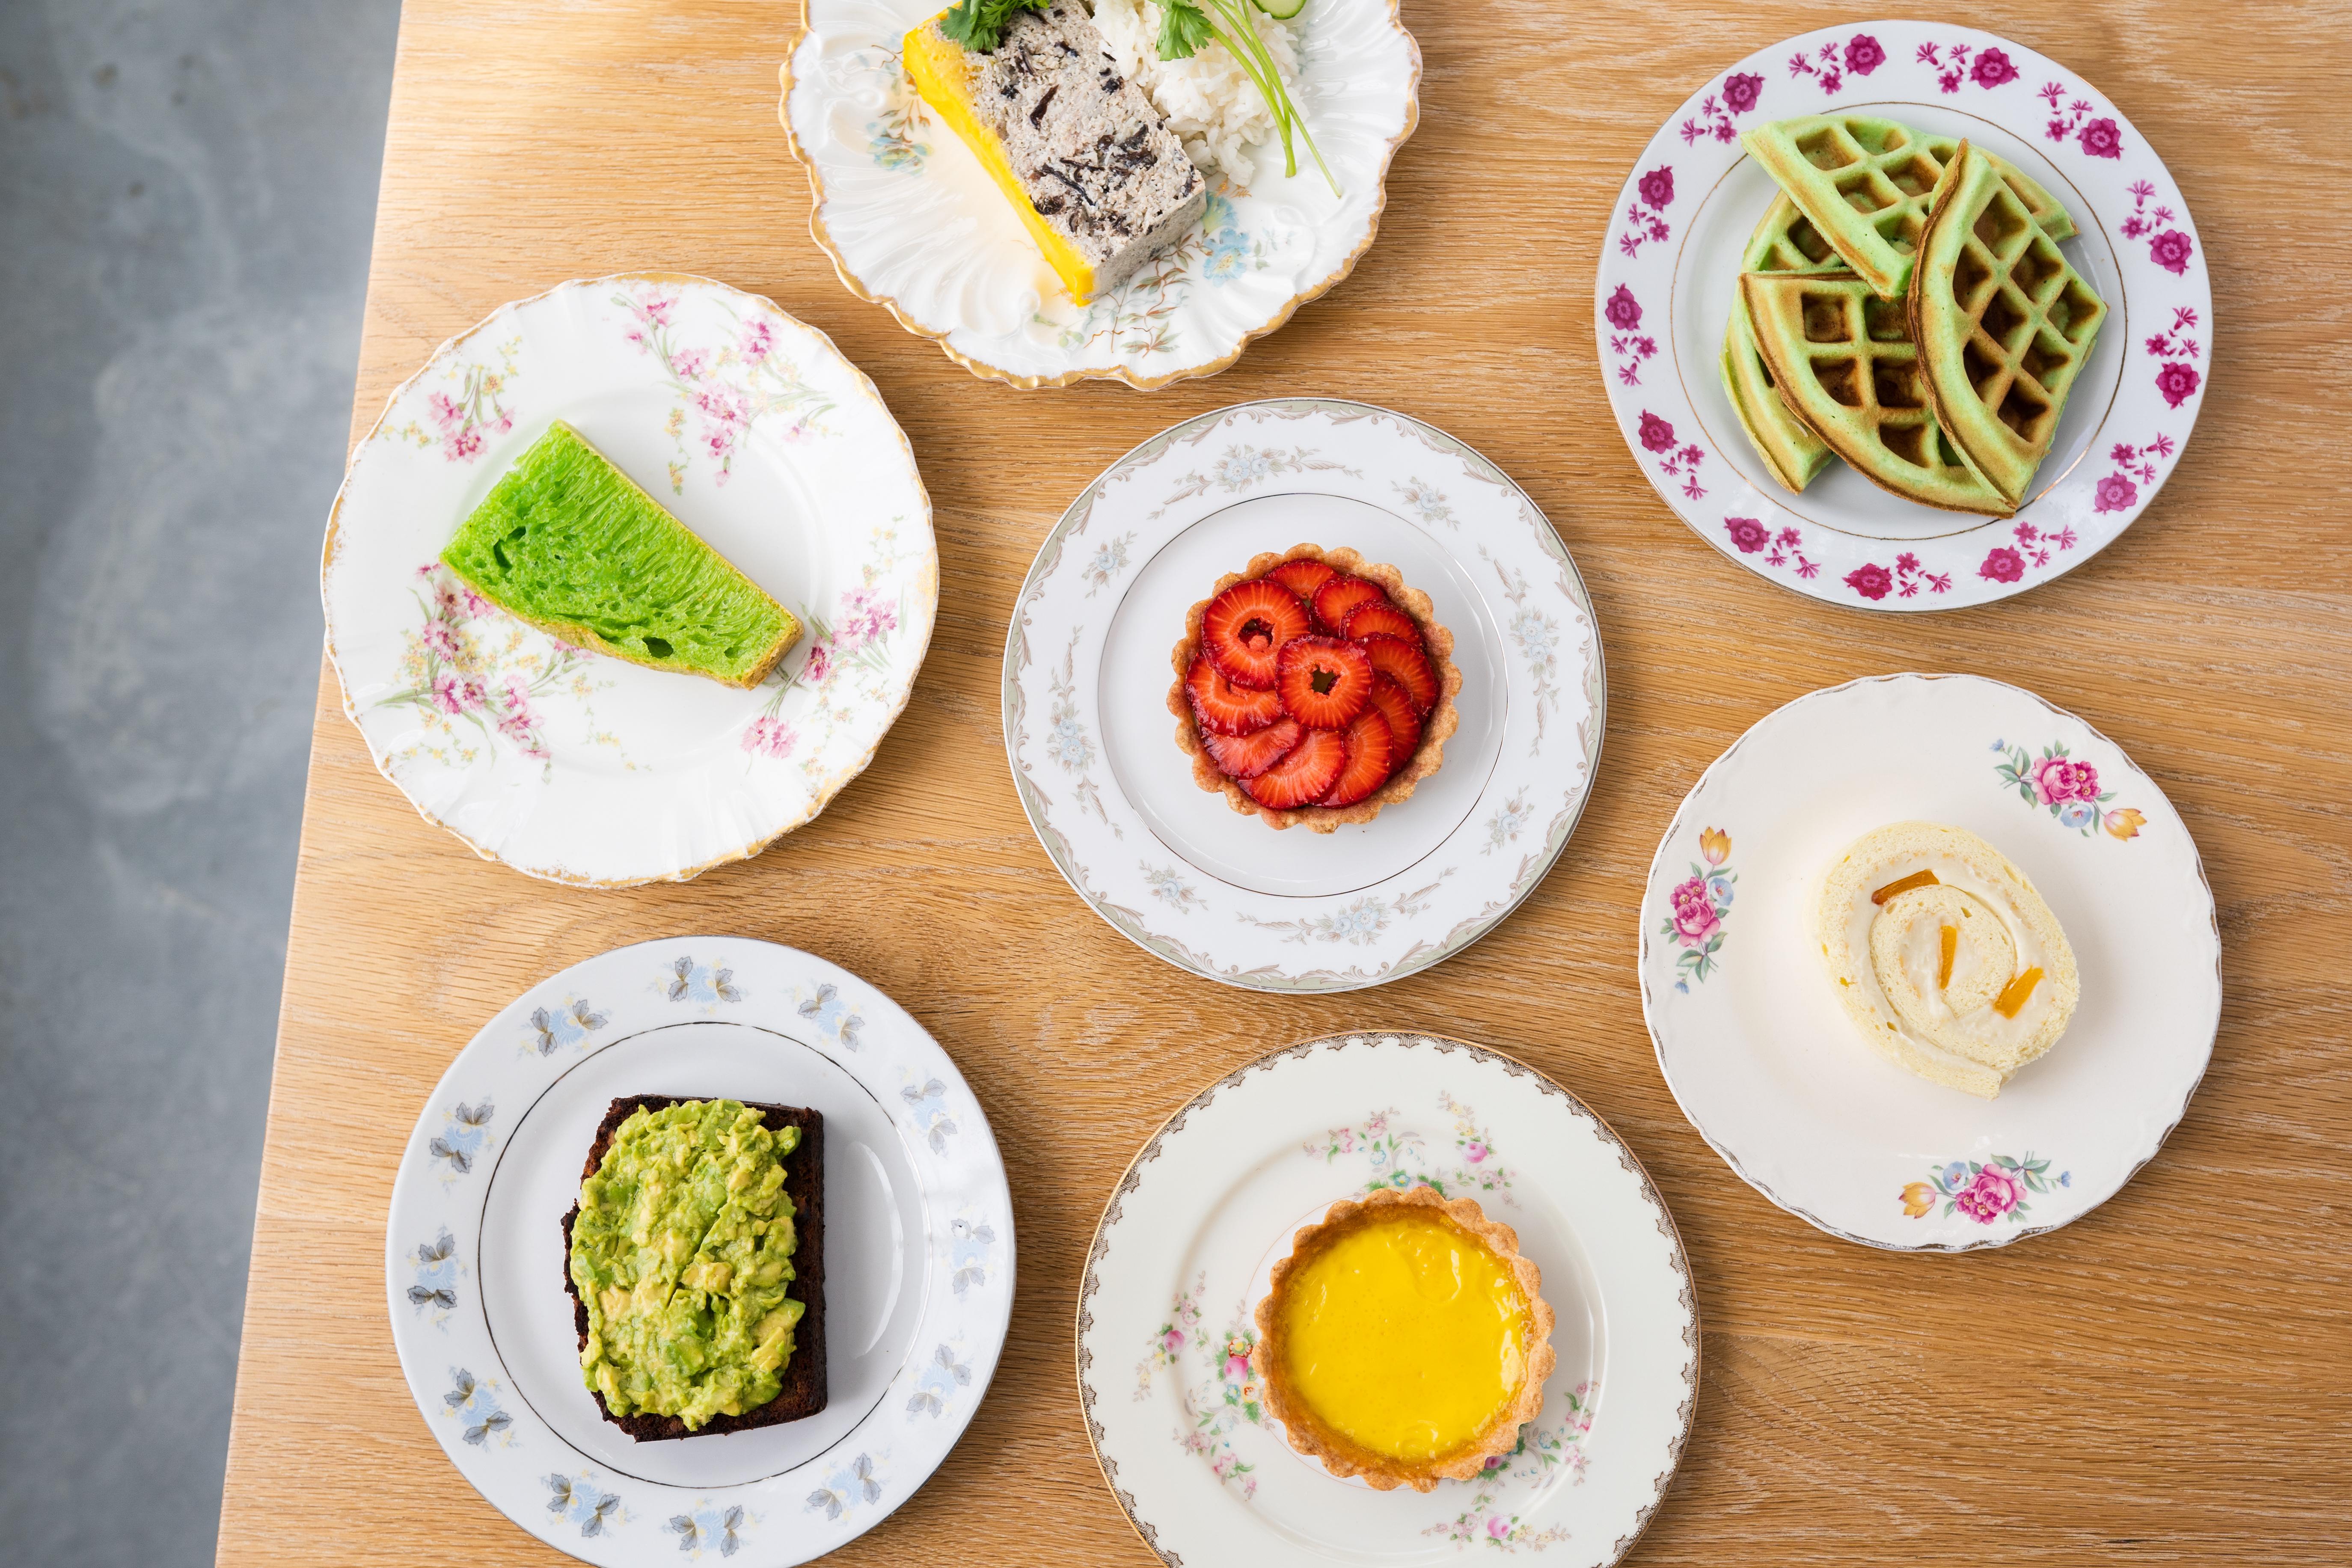 On a wooden table, Berlu's Vietnamese pastries sit on little plates. They range from fruit tarts to pandan waffles to mango roulades.